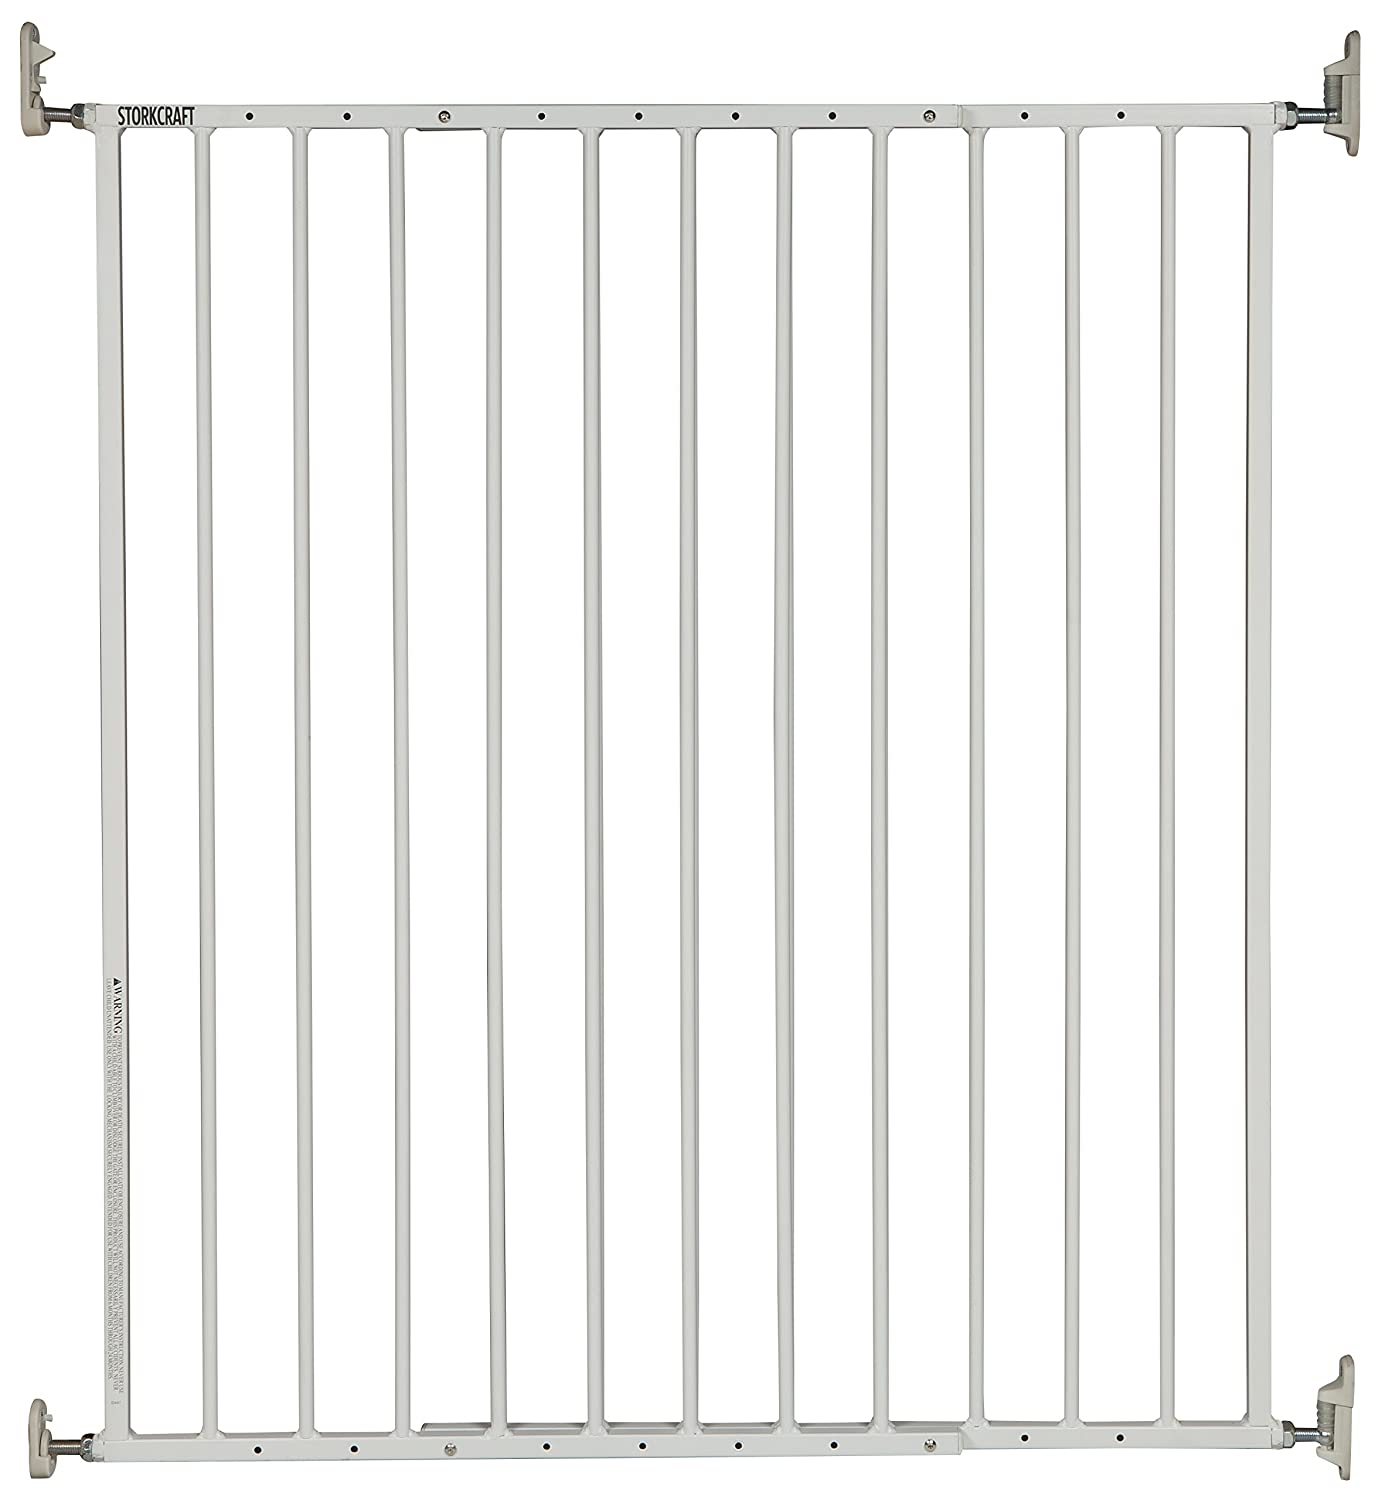 Storkcraft Easy Walk-Thru Tall Metal Safety Gate (White, Black, Gray) – 33.75 Inches Tall, Easy to Install, Pet-Friendly, Durable Metal Hardware, Ideal for Taller Children and Larger Pets